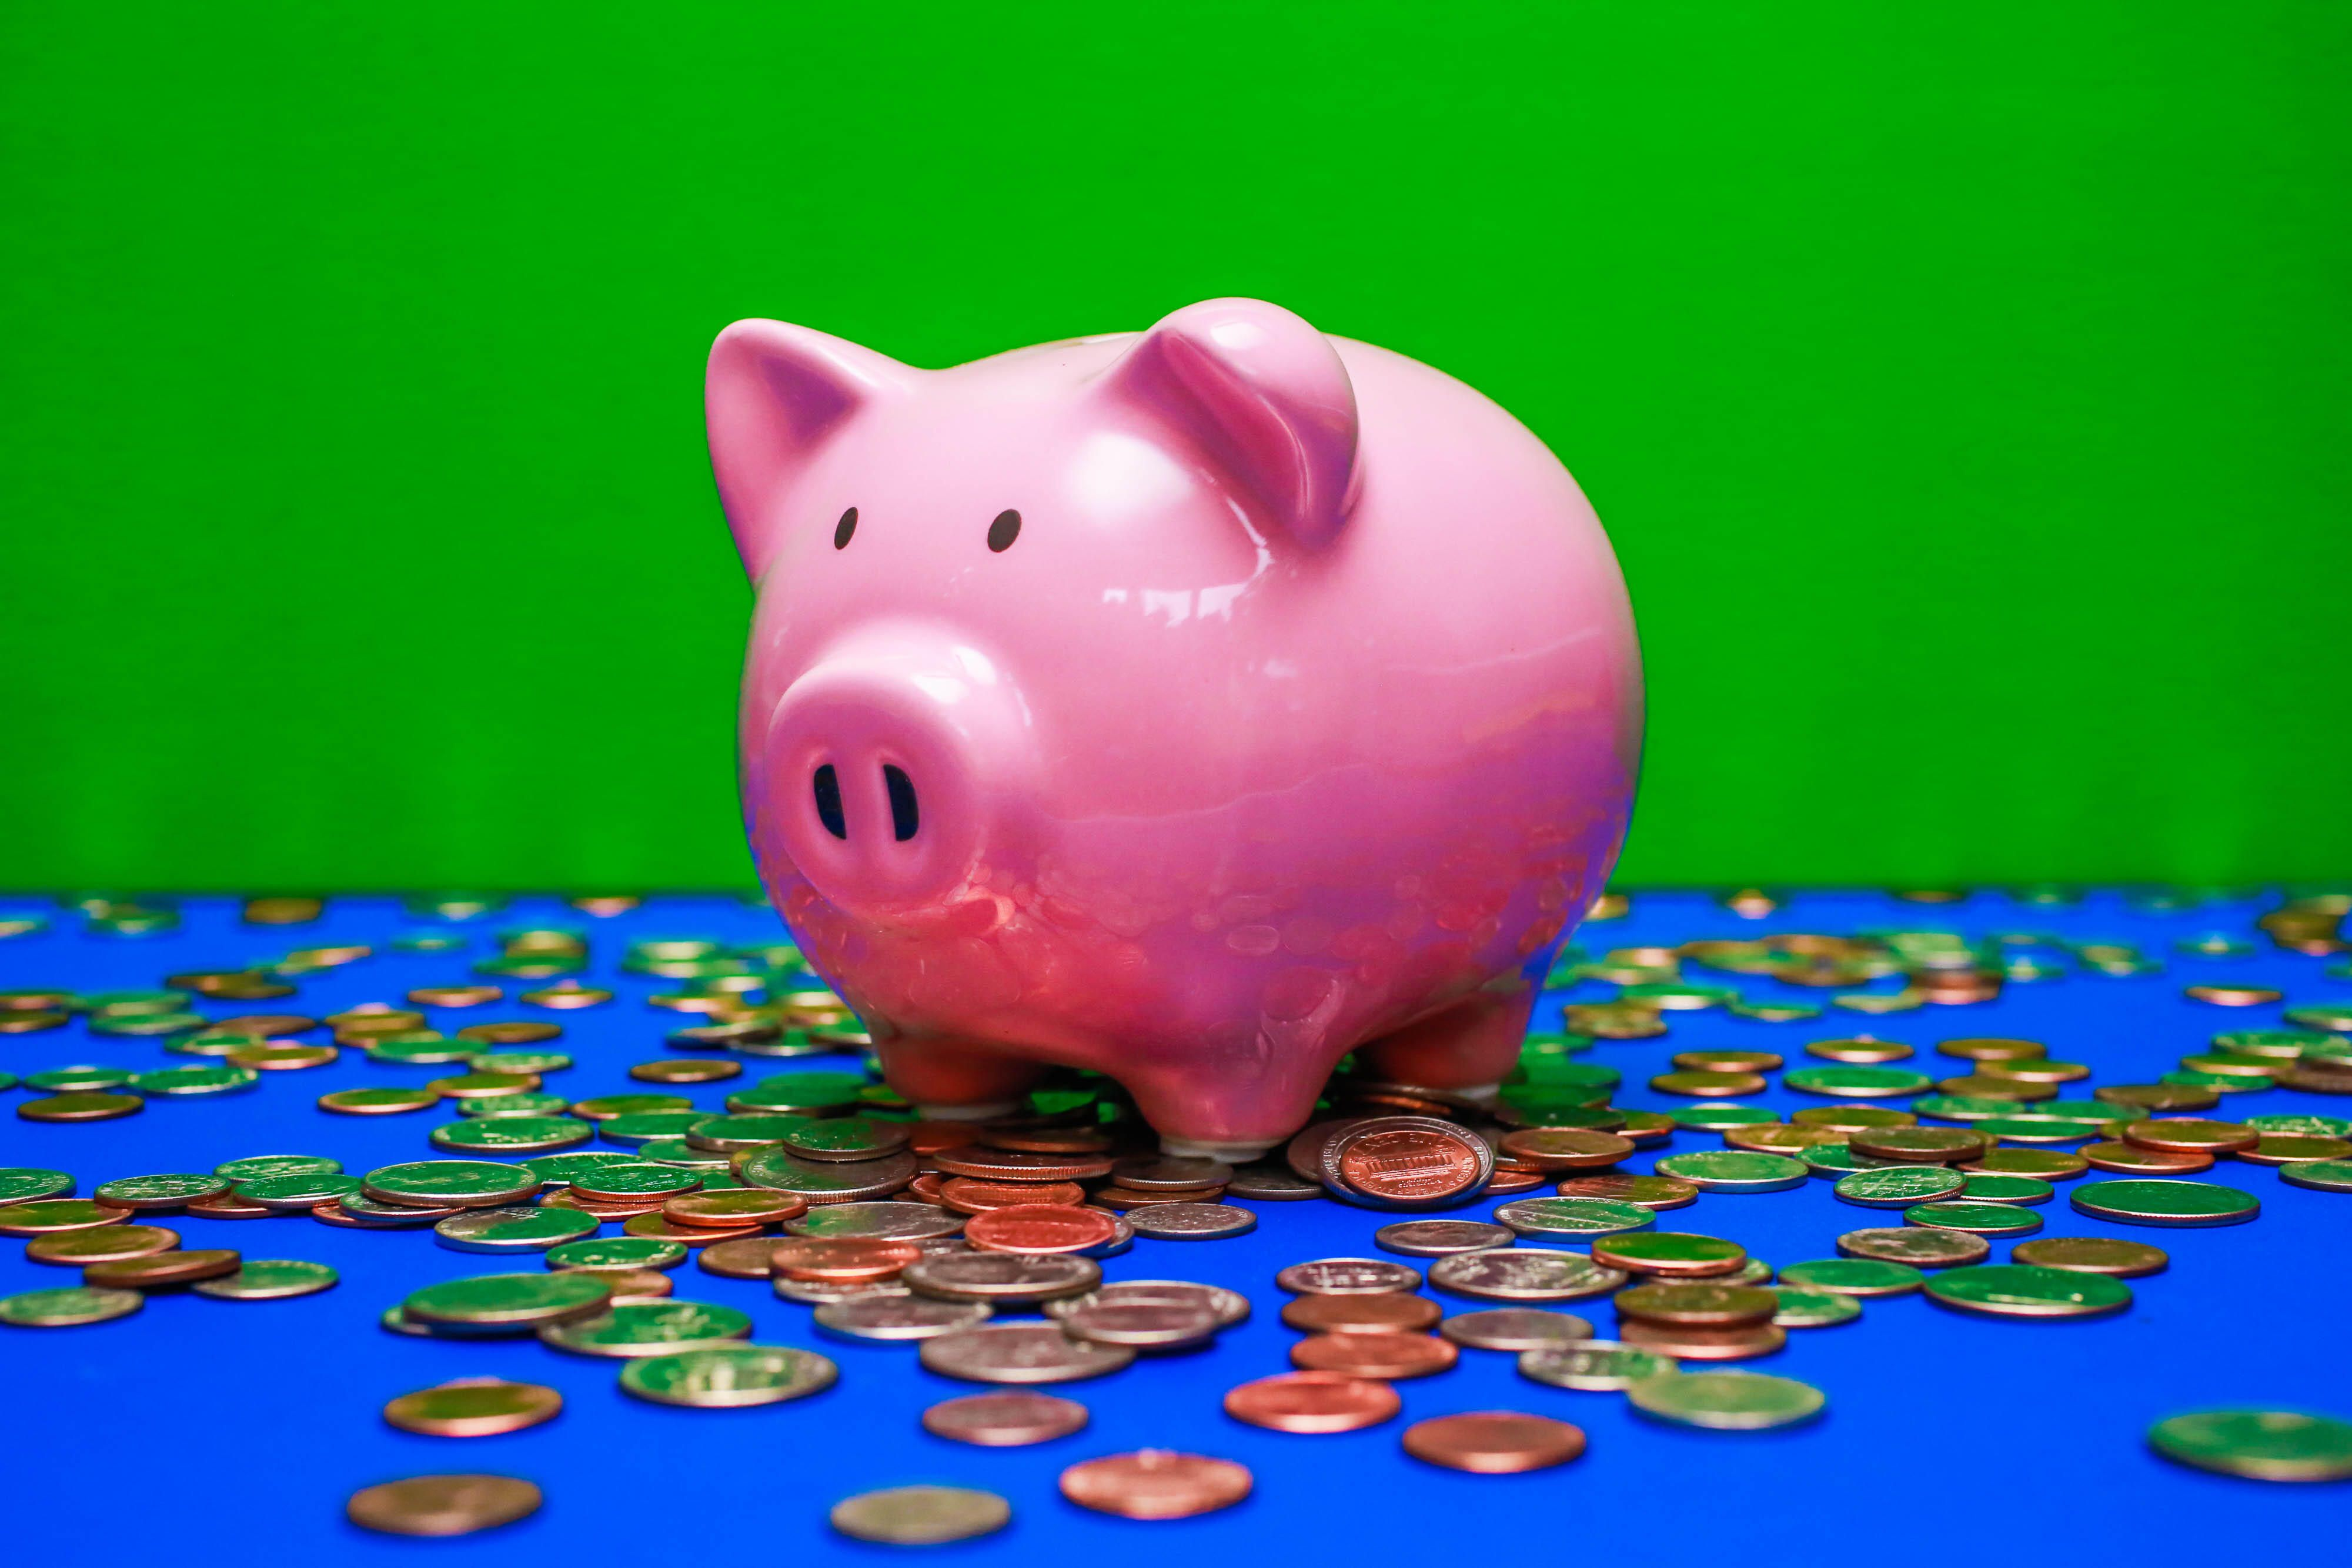 breaking-the-piggy-bank-stimulus-check-cash-money-savings-debt-personal-finance-023